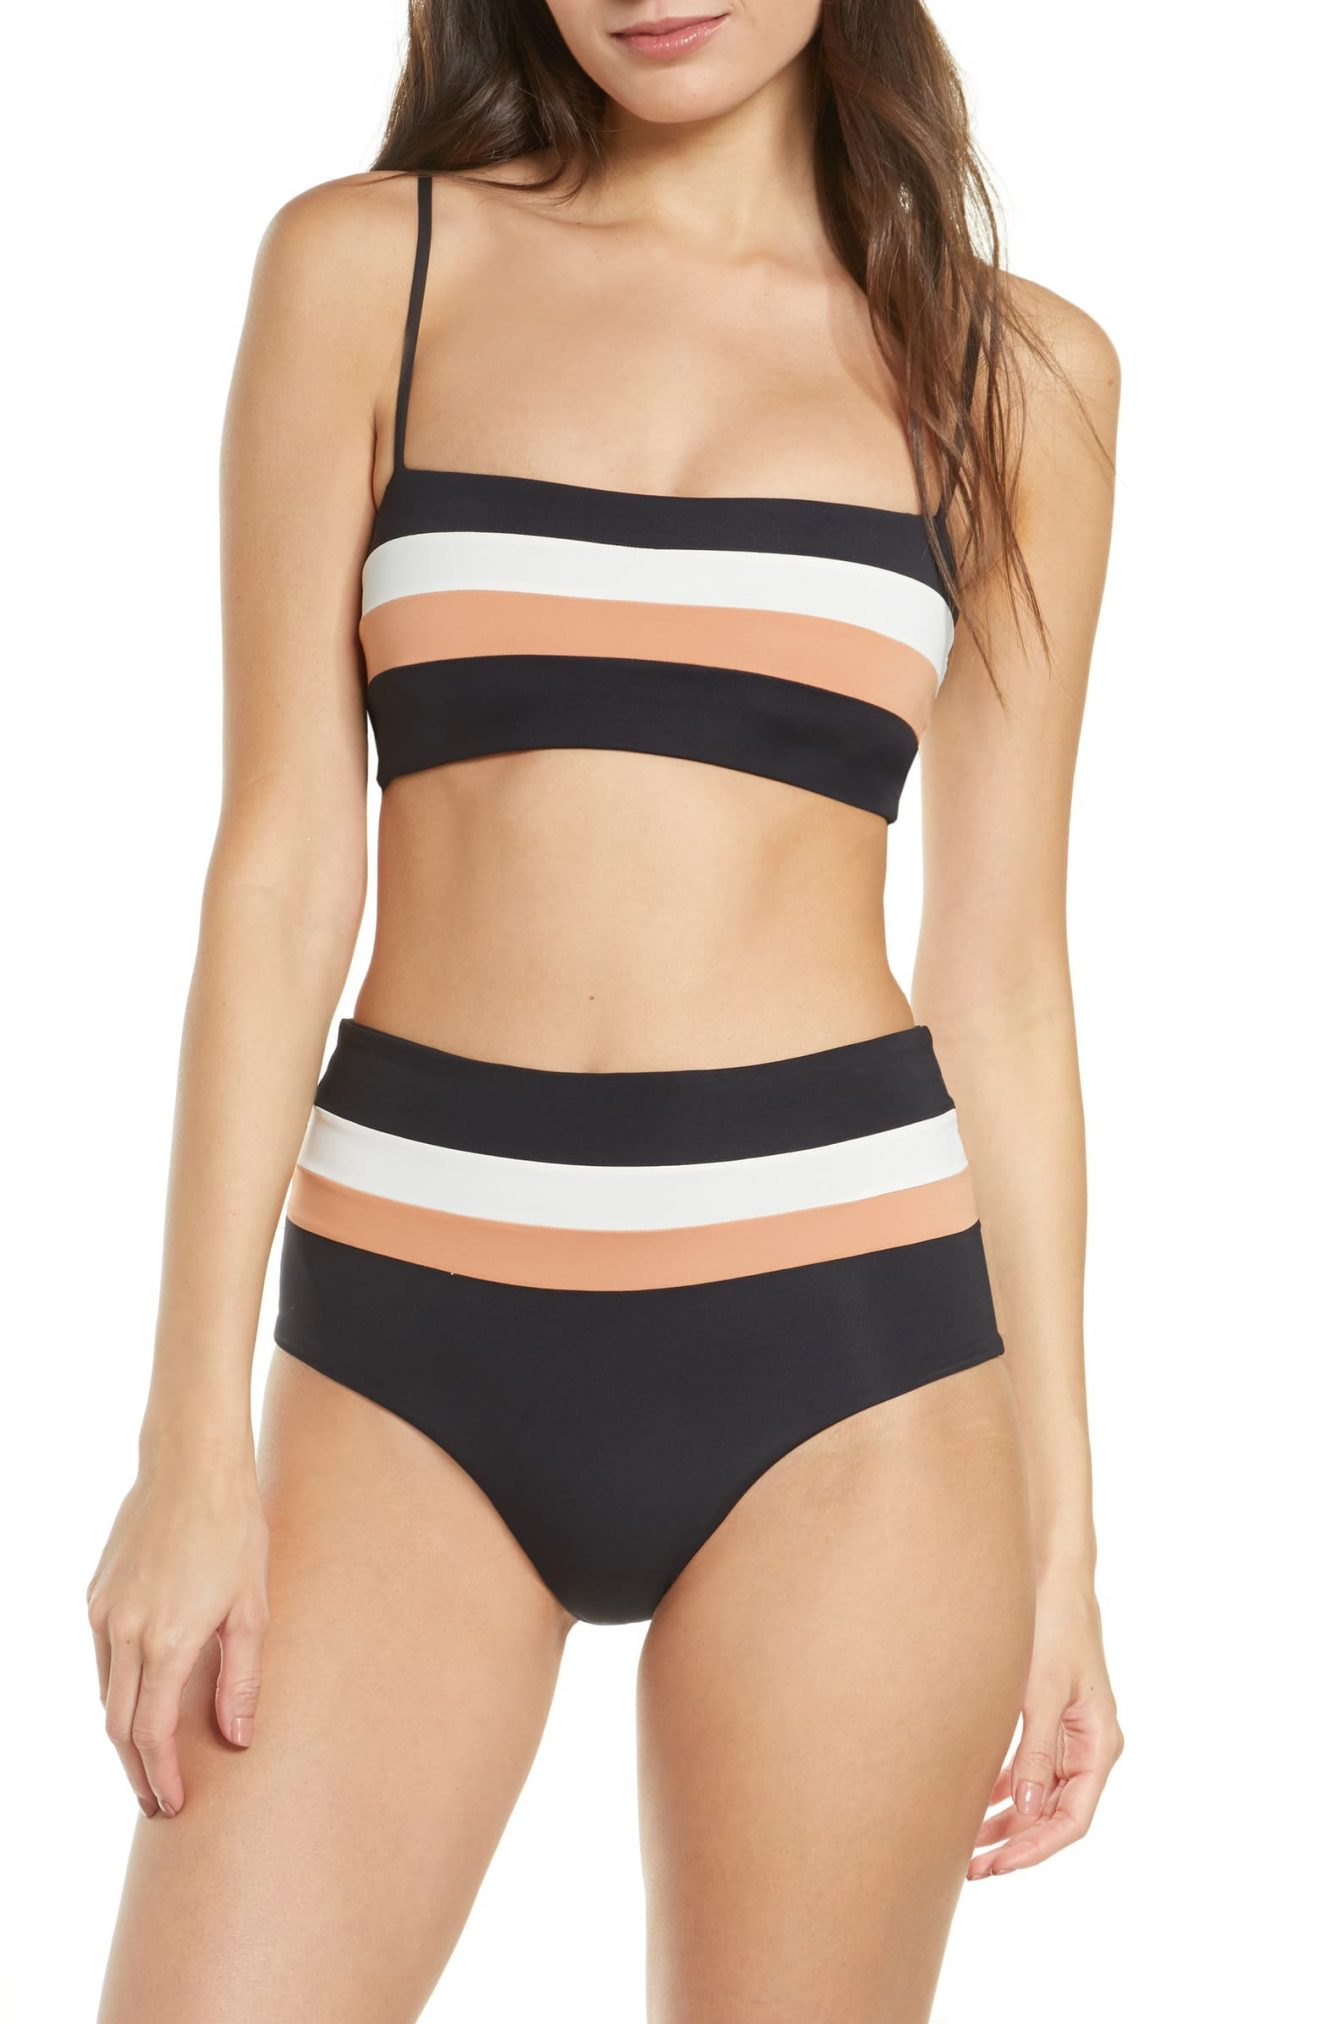 Girls in bikinis with stretch marks Cute Bathing Suits That Cover Stretch Marks Baby Chick